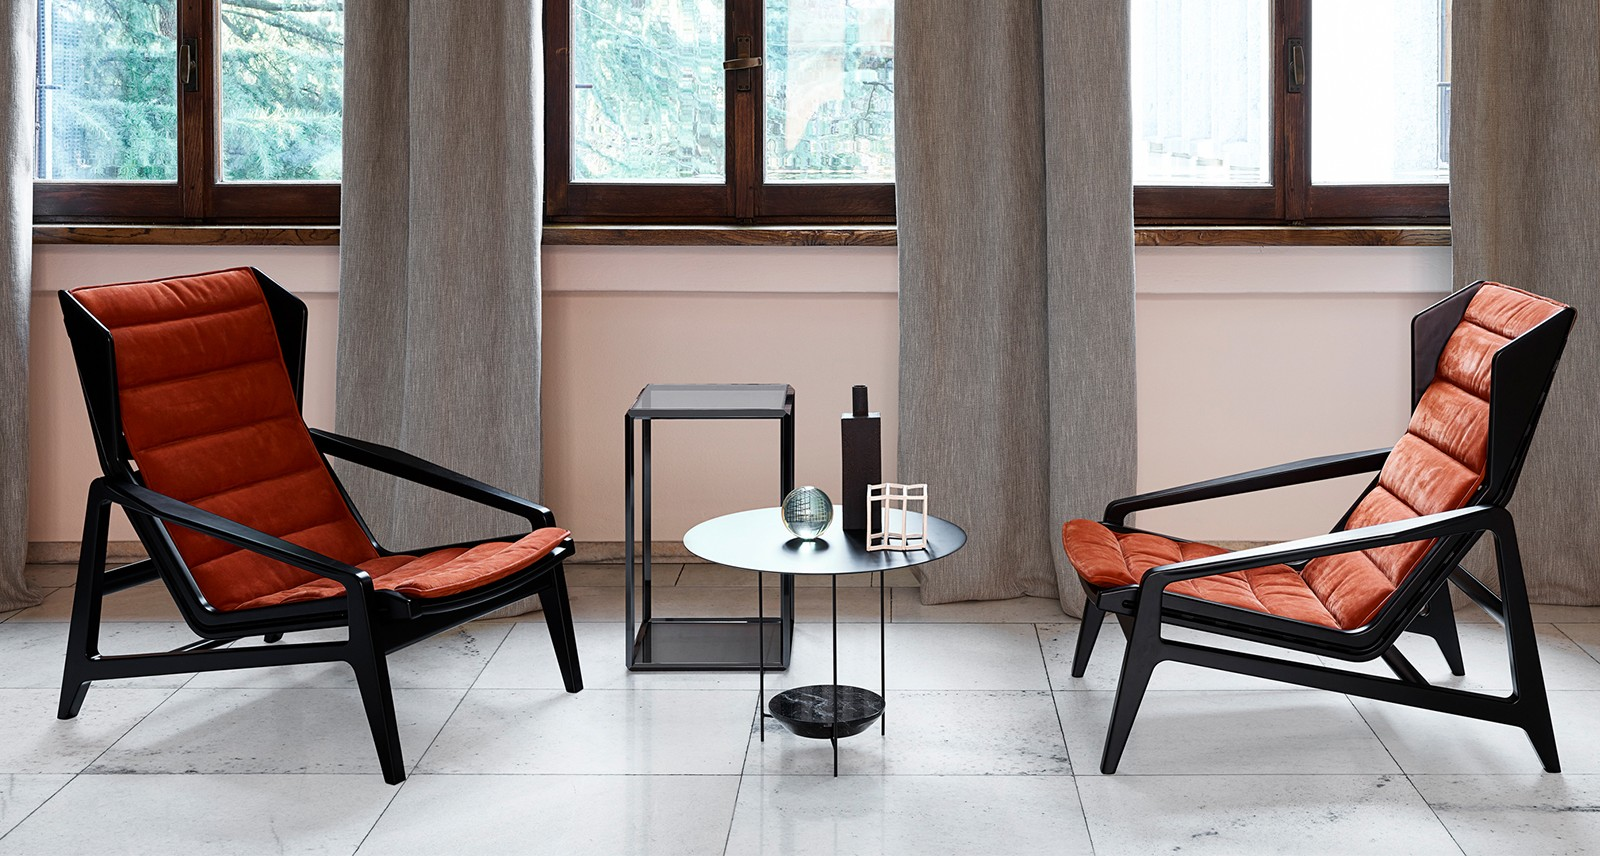 Buy This Gio Ponti Armchair, and Your Friends Will Never Leave Your Living Room Again